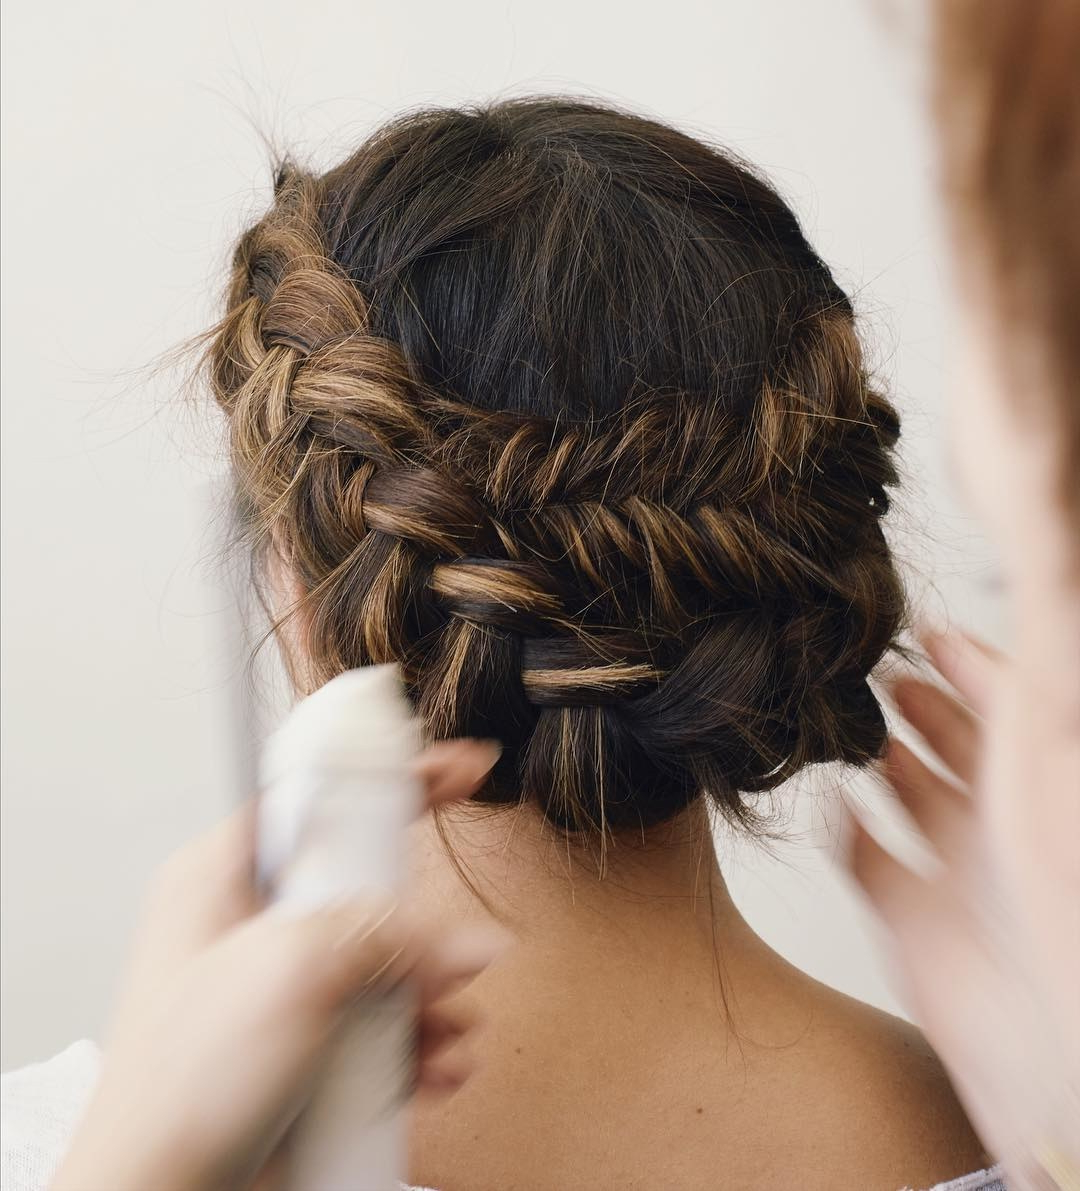 2018 Woven Updos With Tendrils For Wedding For 61 Braided Wedding Hairstyles (View 7 of 20)